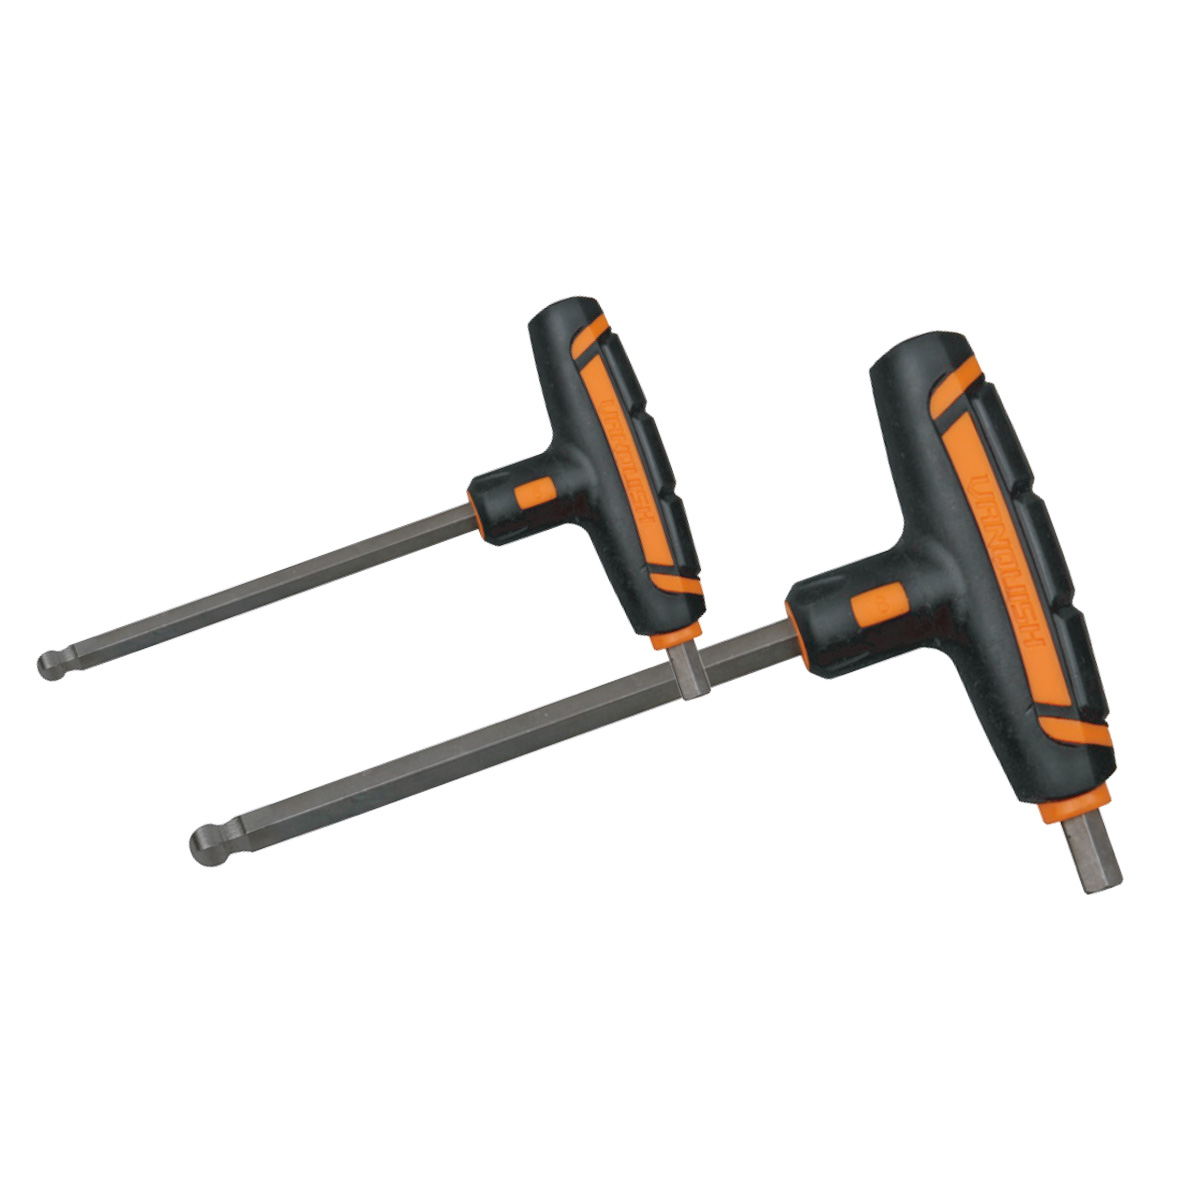 T HAND BALL END HEX KEY